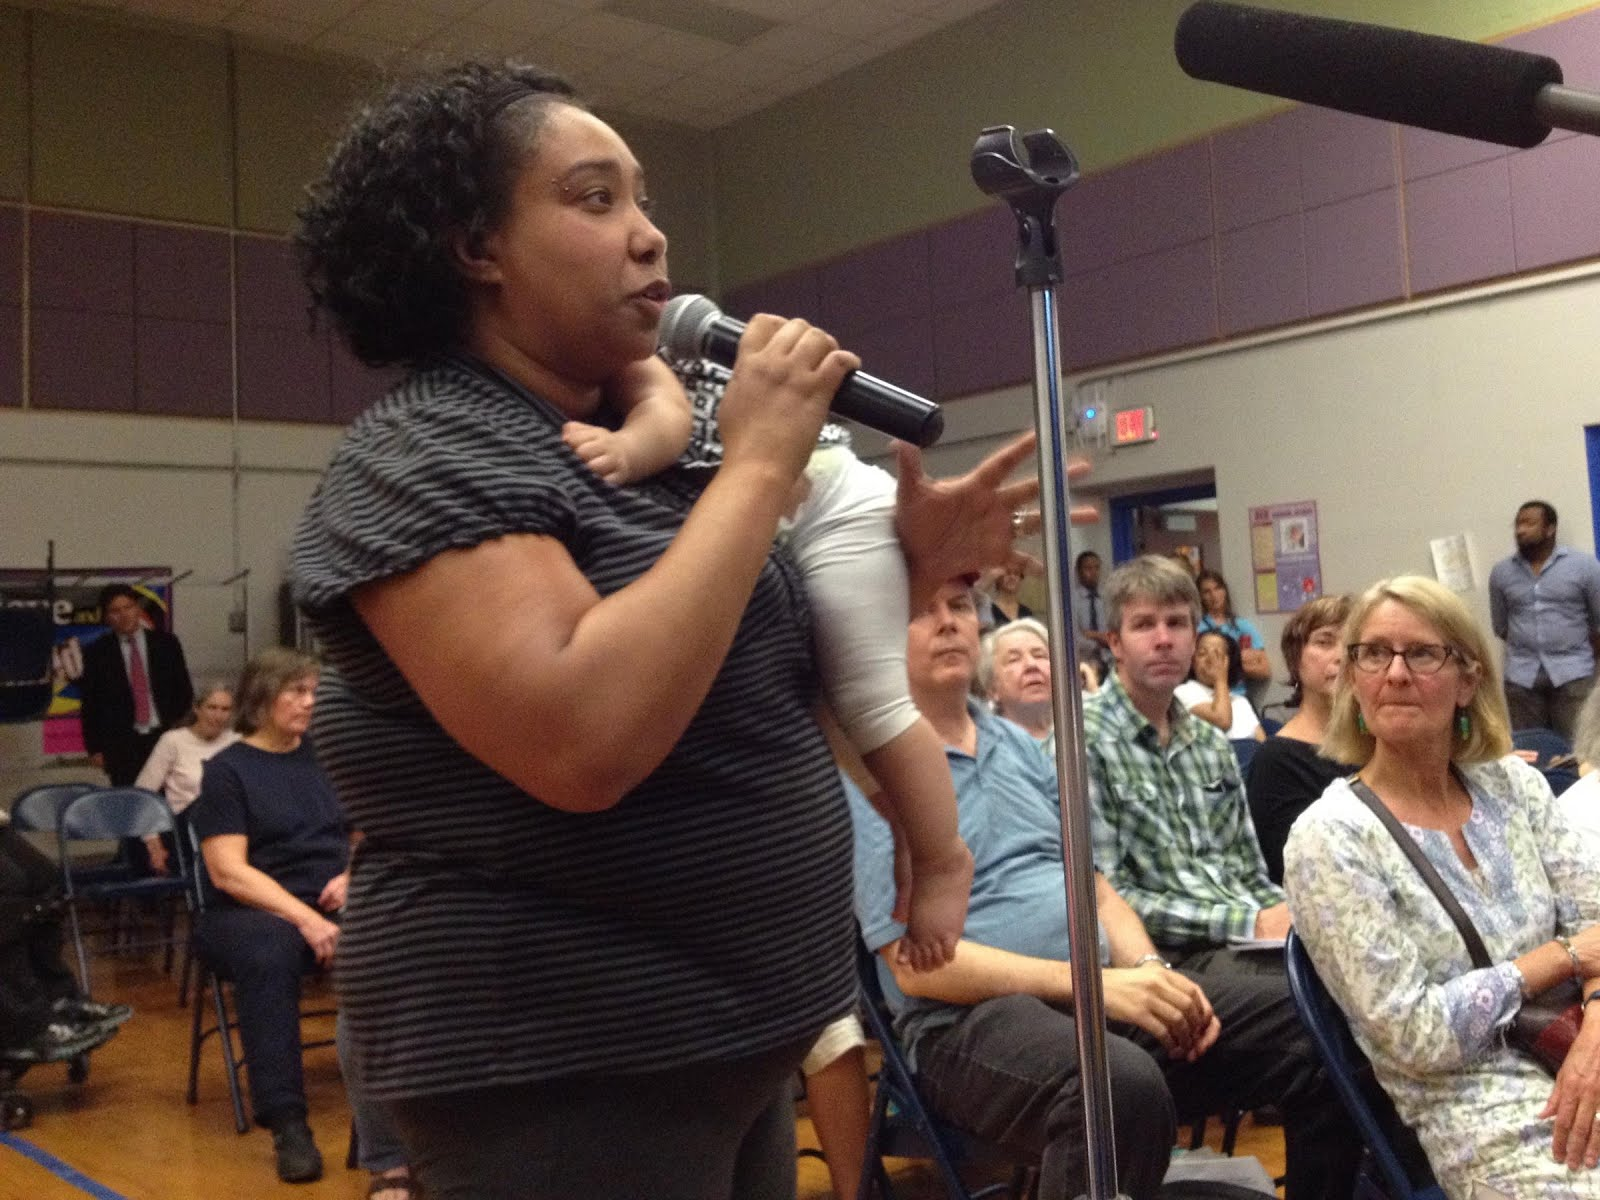 Voicing concerns at a Town Hall Meeting